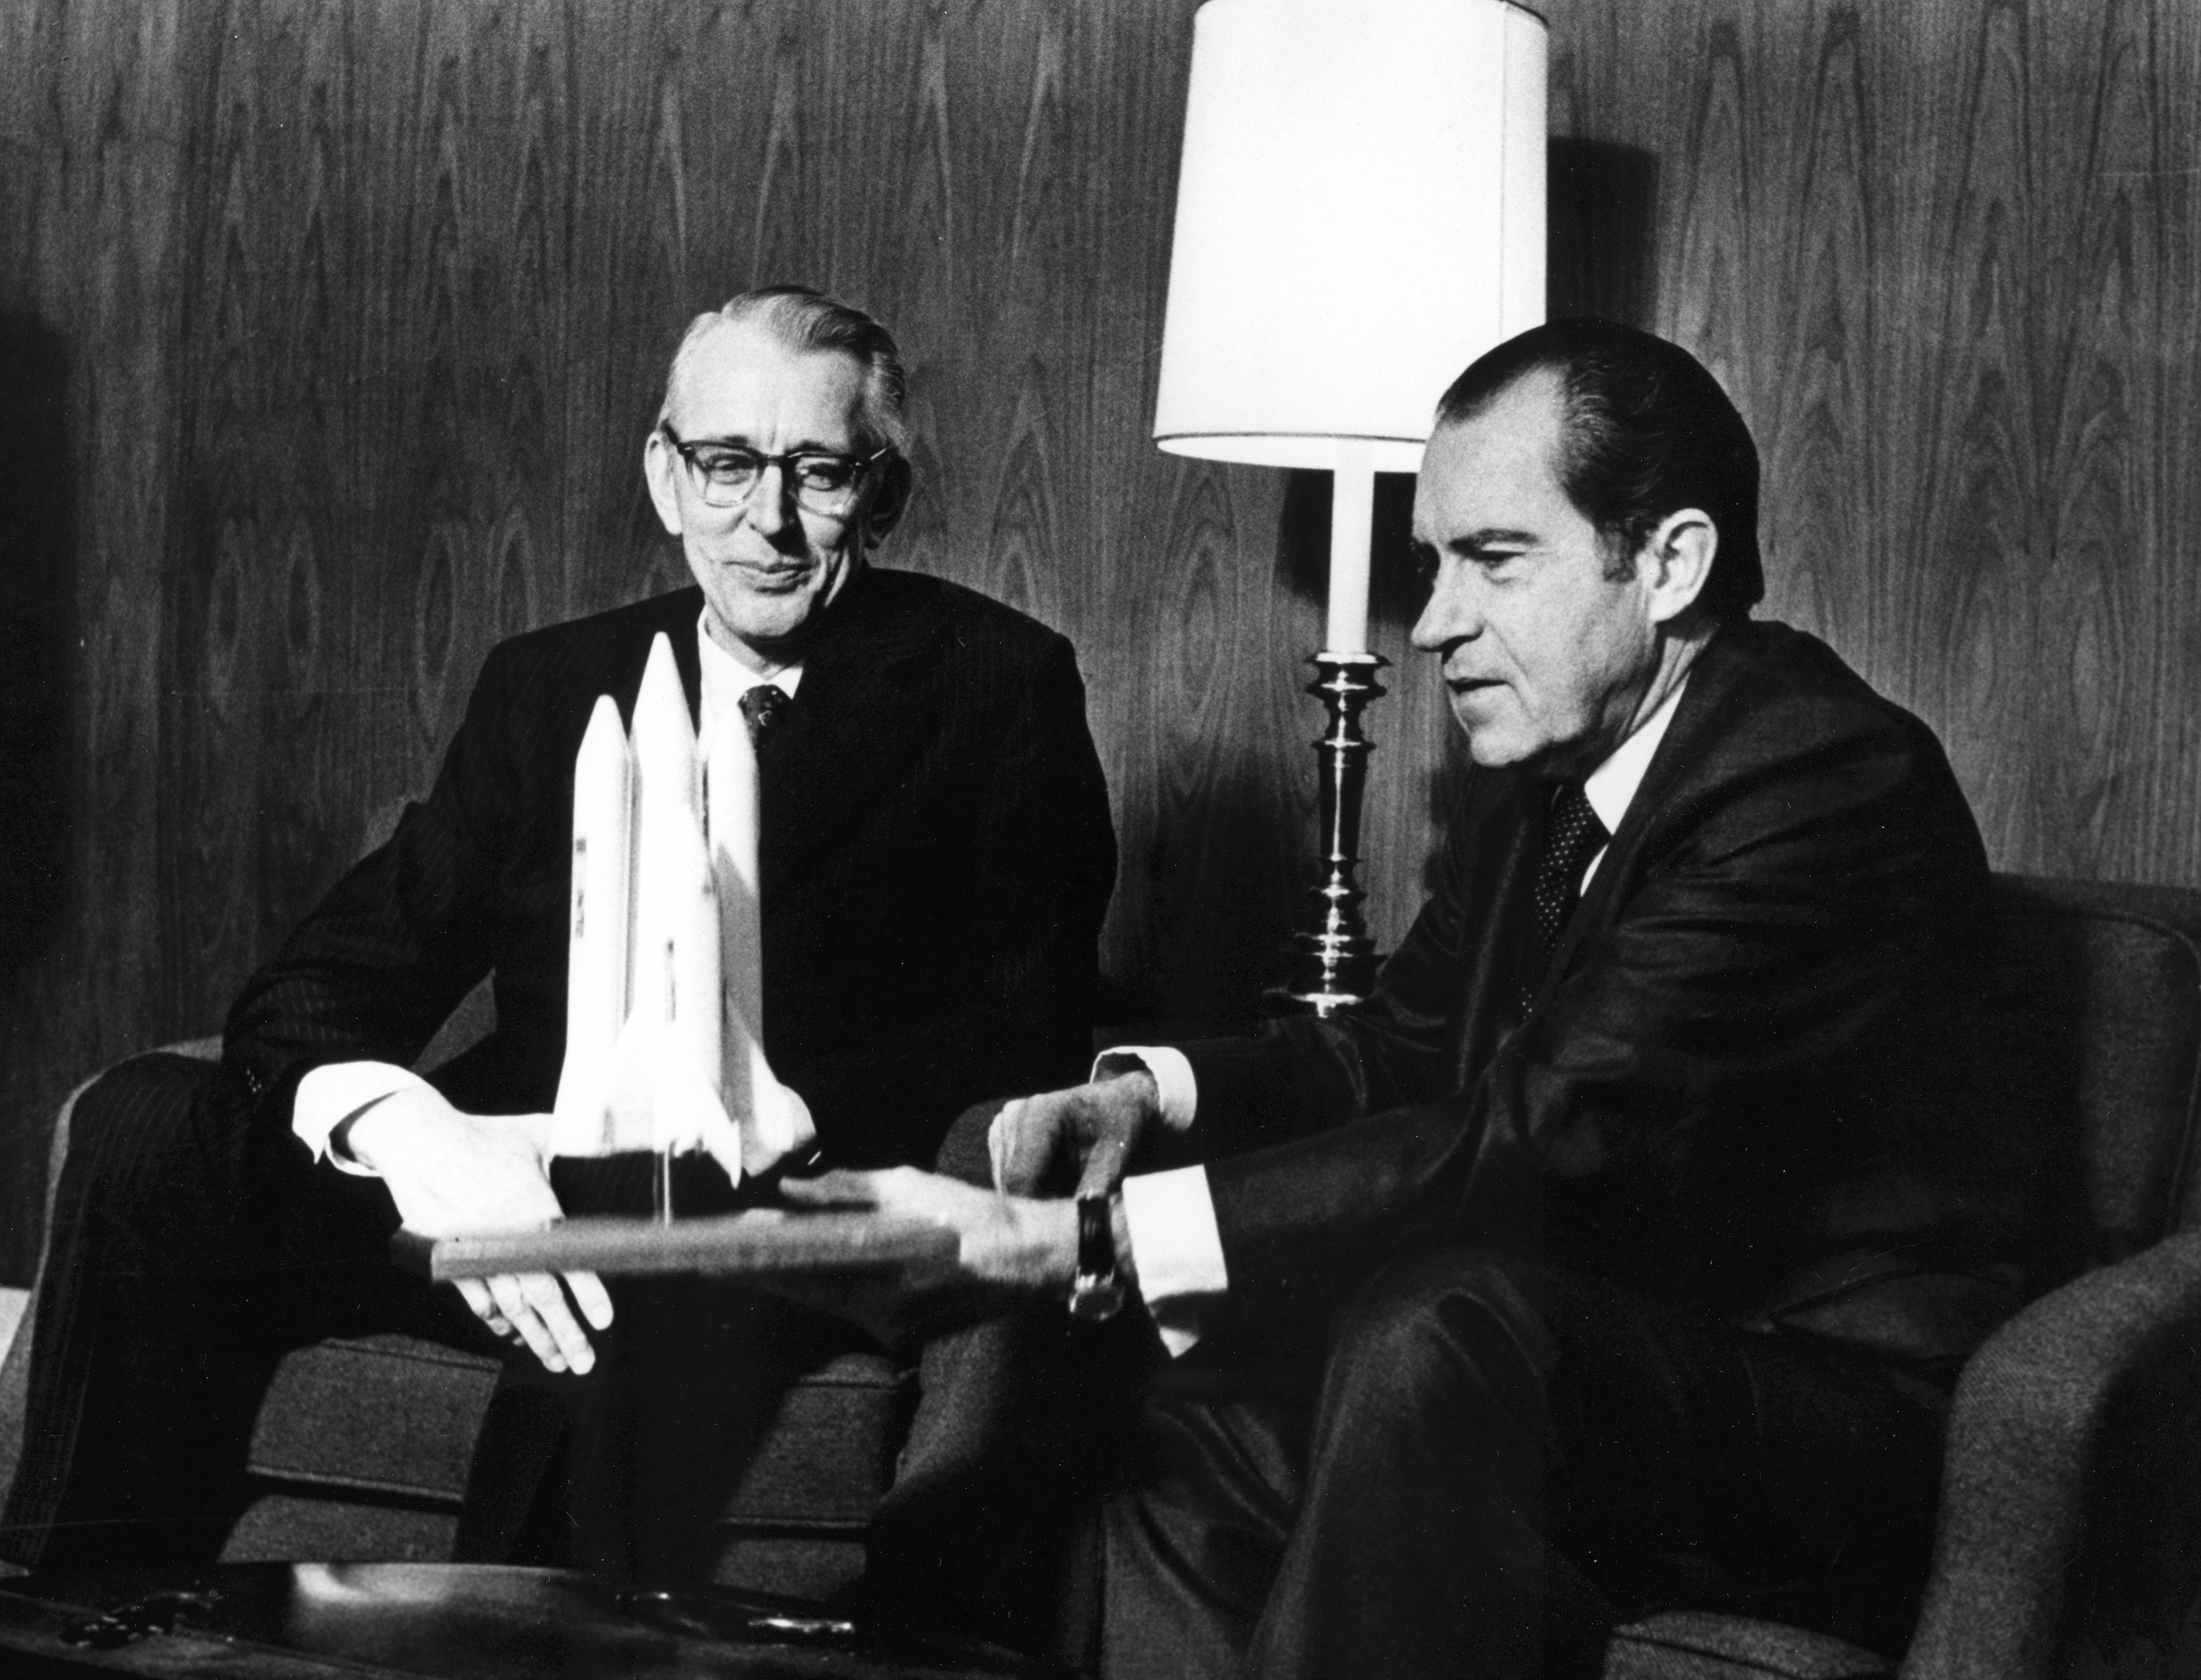 President Nixon and NASA Administrator James Fletcher discuss the space shuttle program.